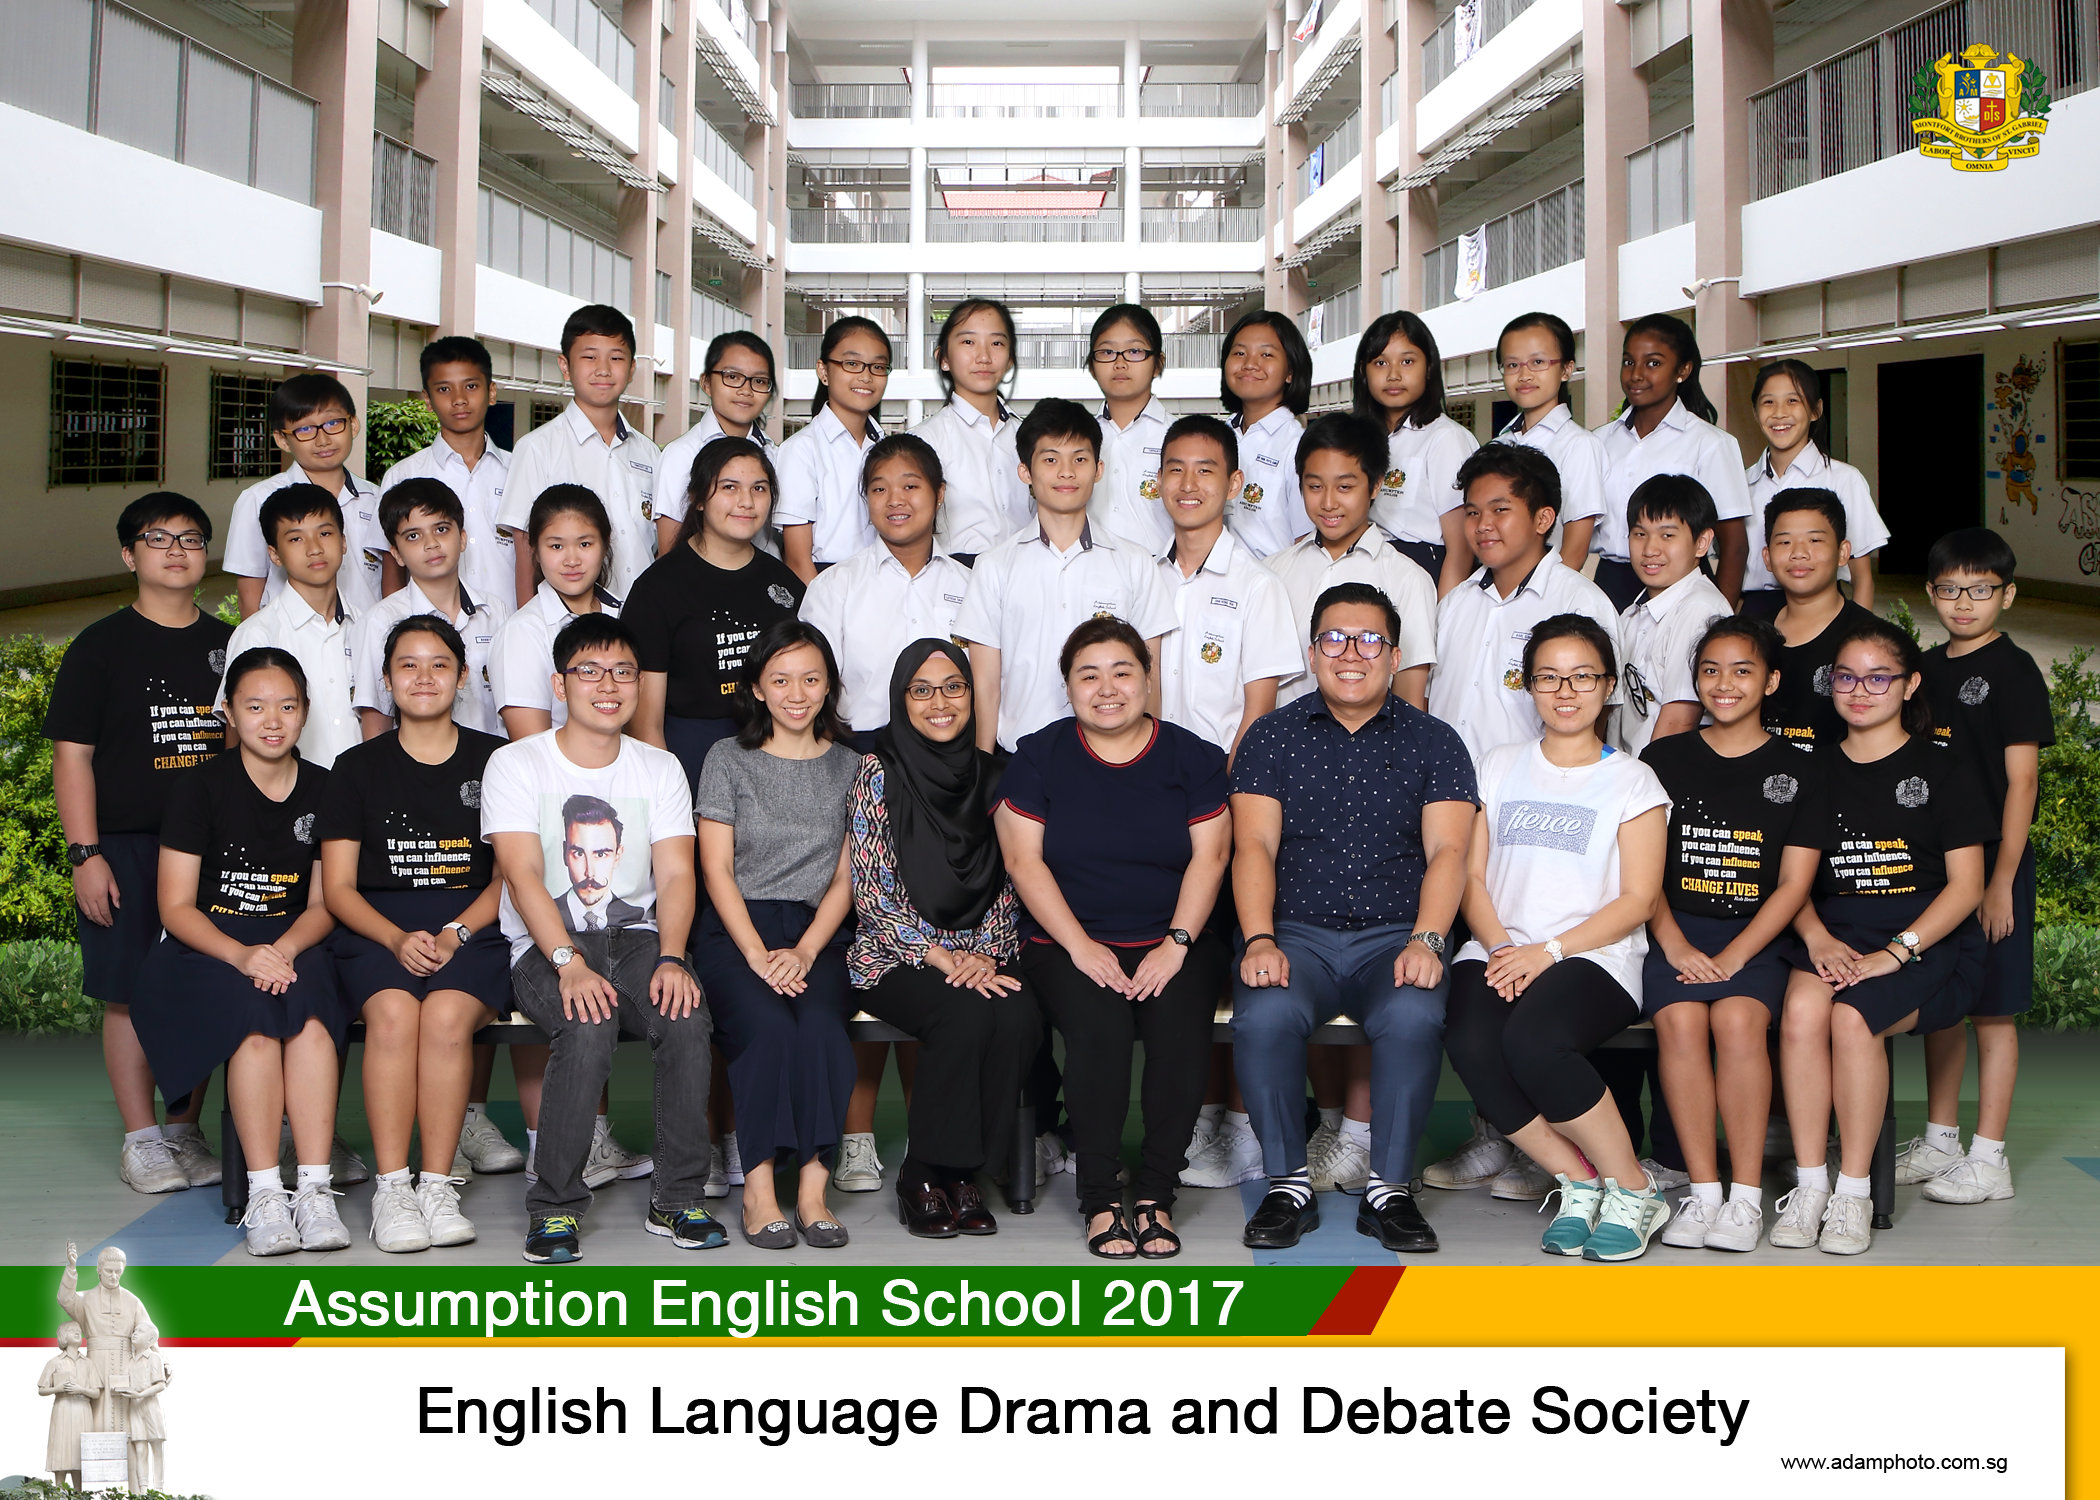 english language drama and debate society 2.jpg